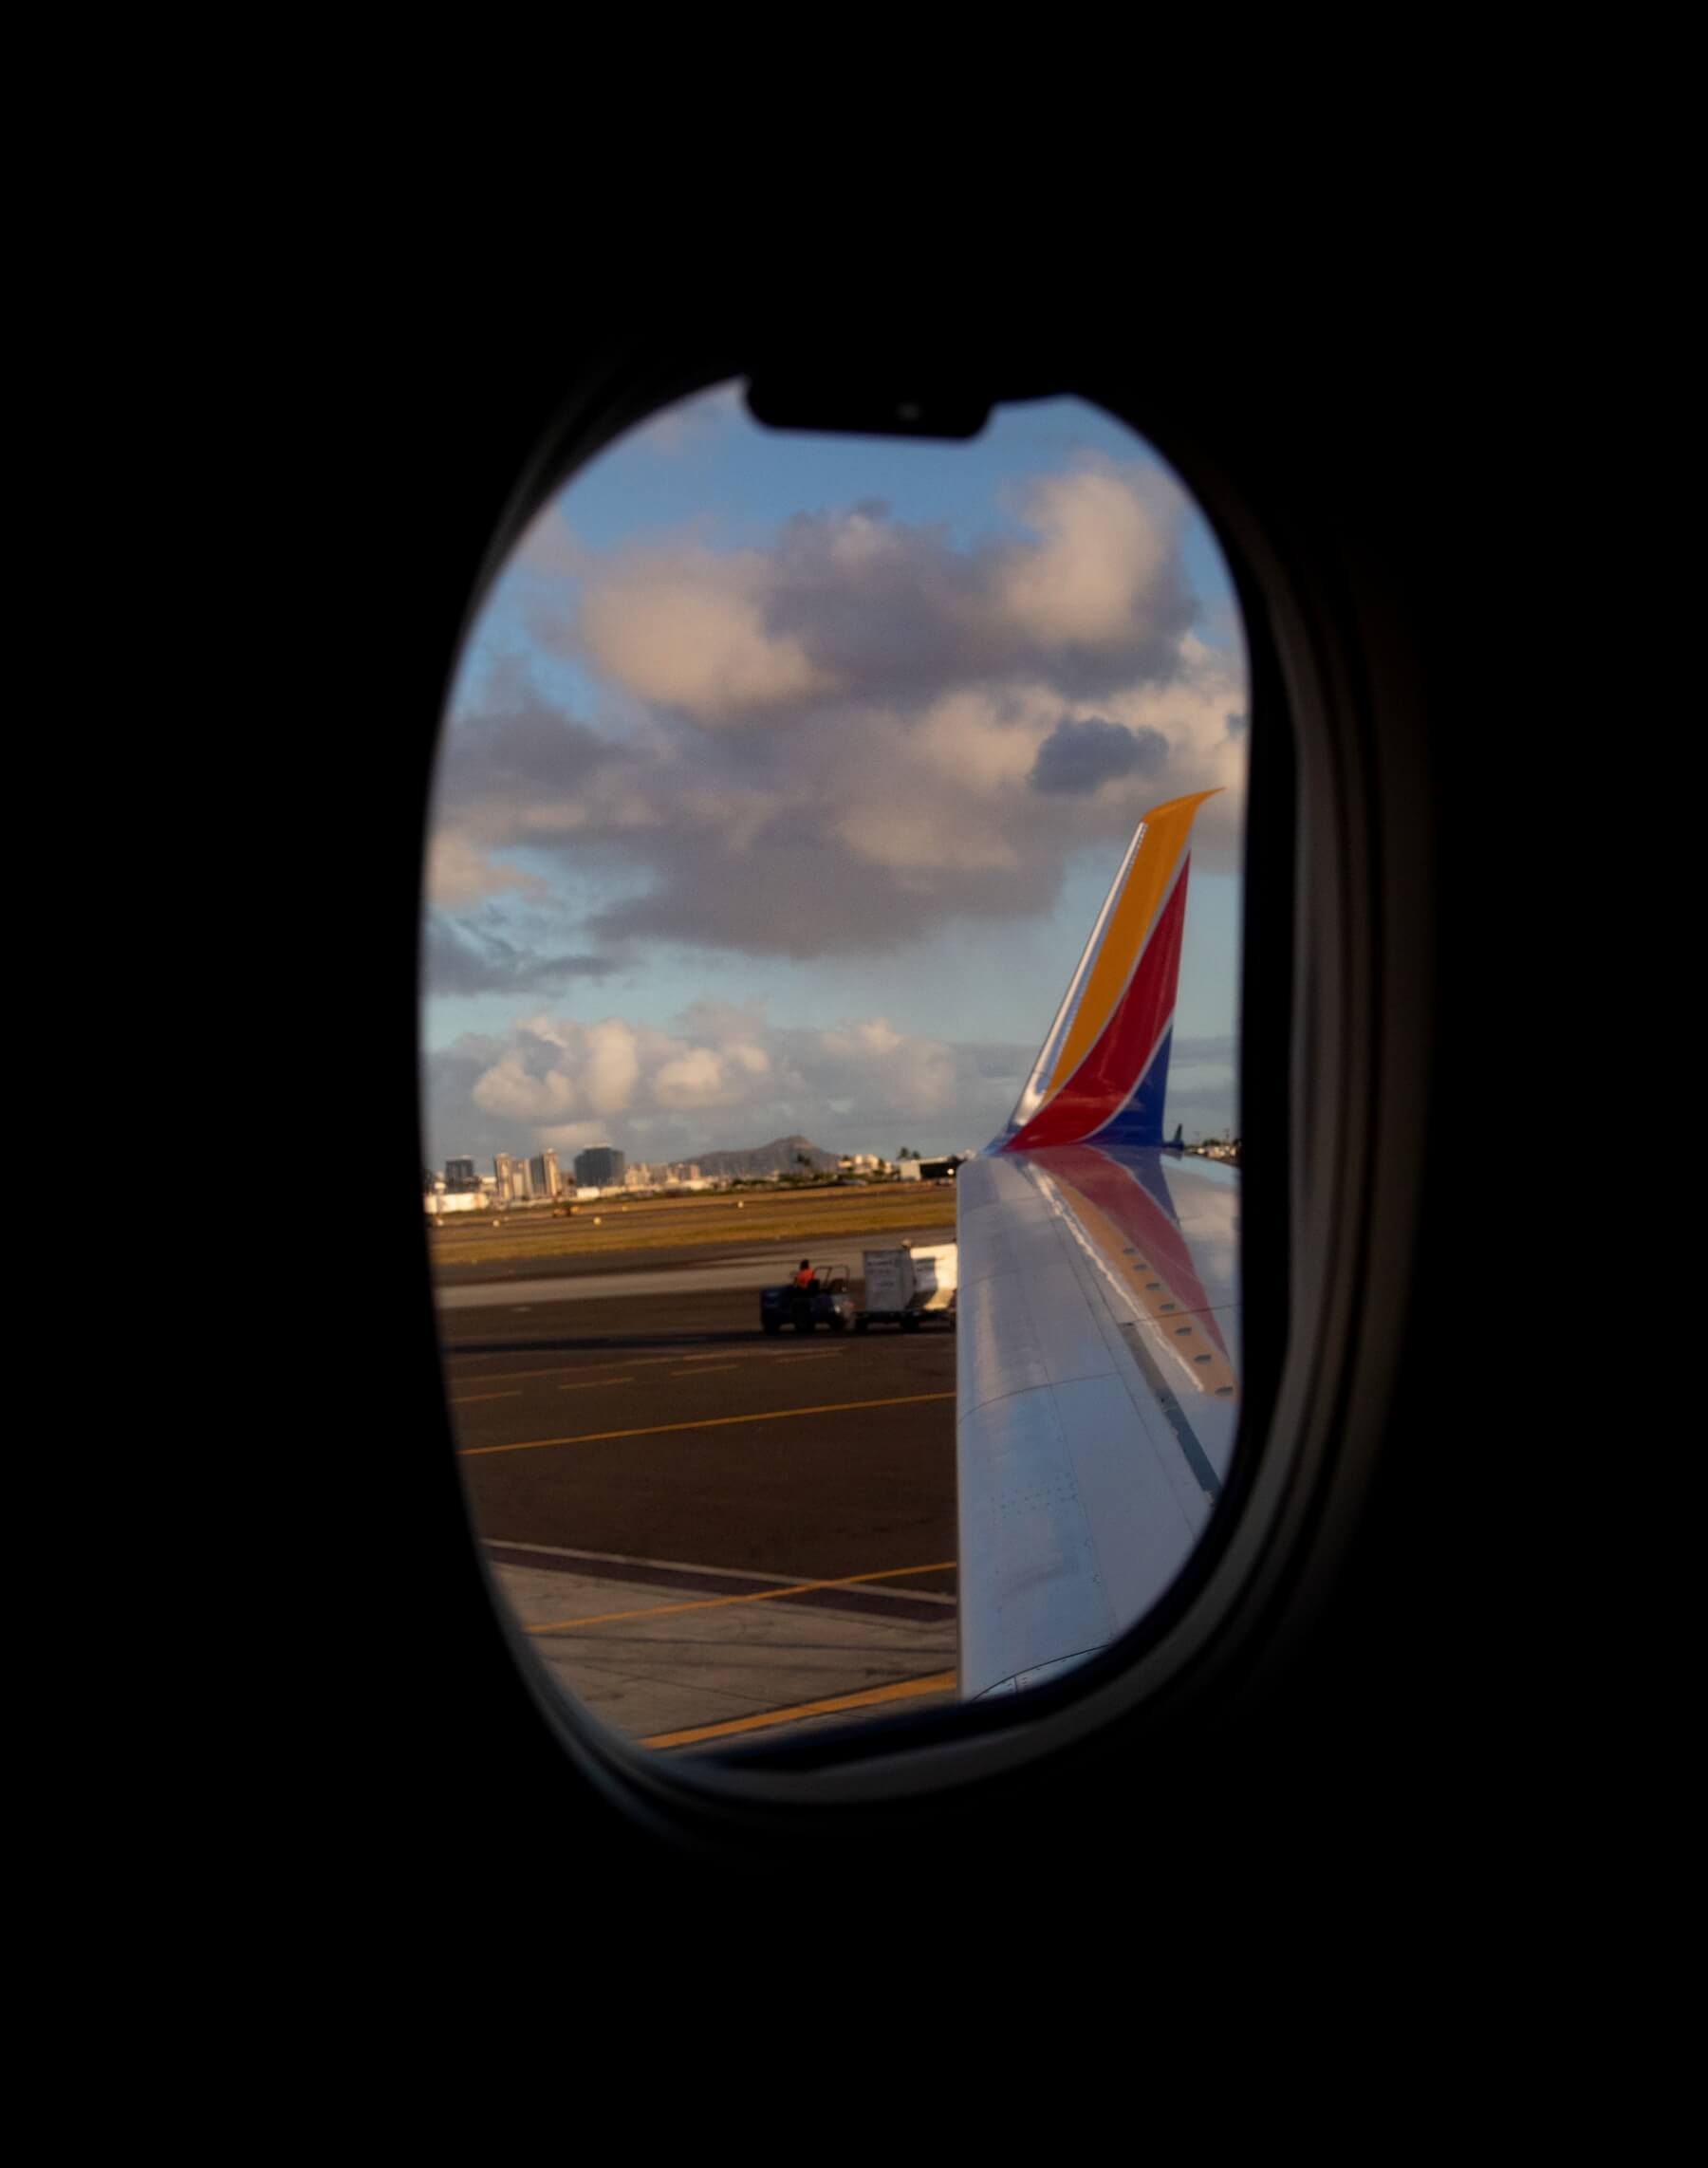 The view from a Southwest airlines plane window